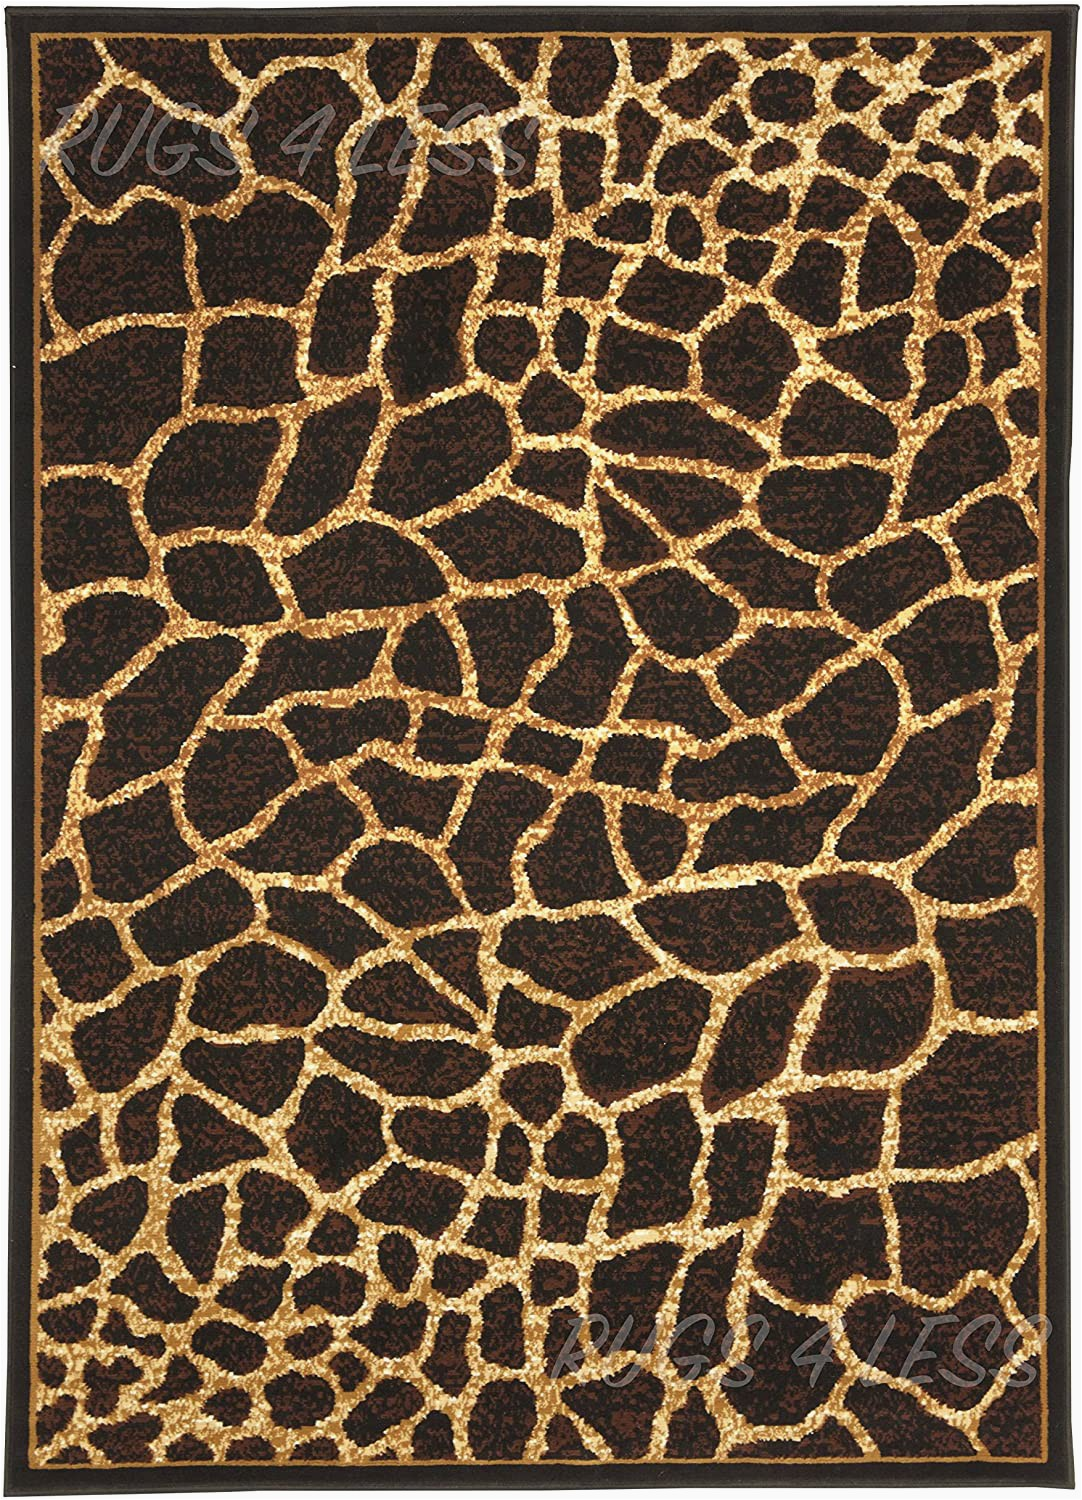 Faux Animal Skin area Rugs Faux Giraffe Skin Animal area Rug Animal Skin Pelt area Rug Giraffe Skin 5 X7 5ft X 7ft